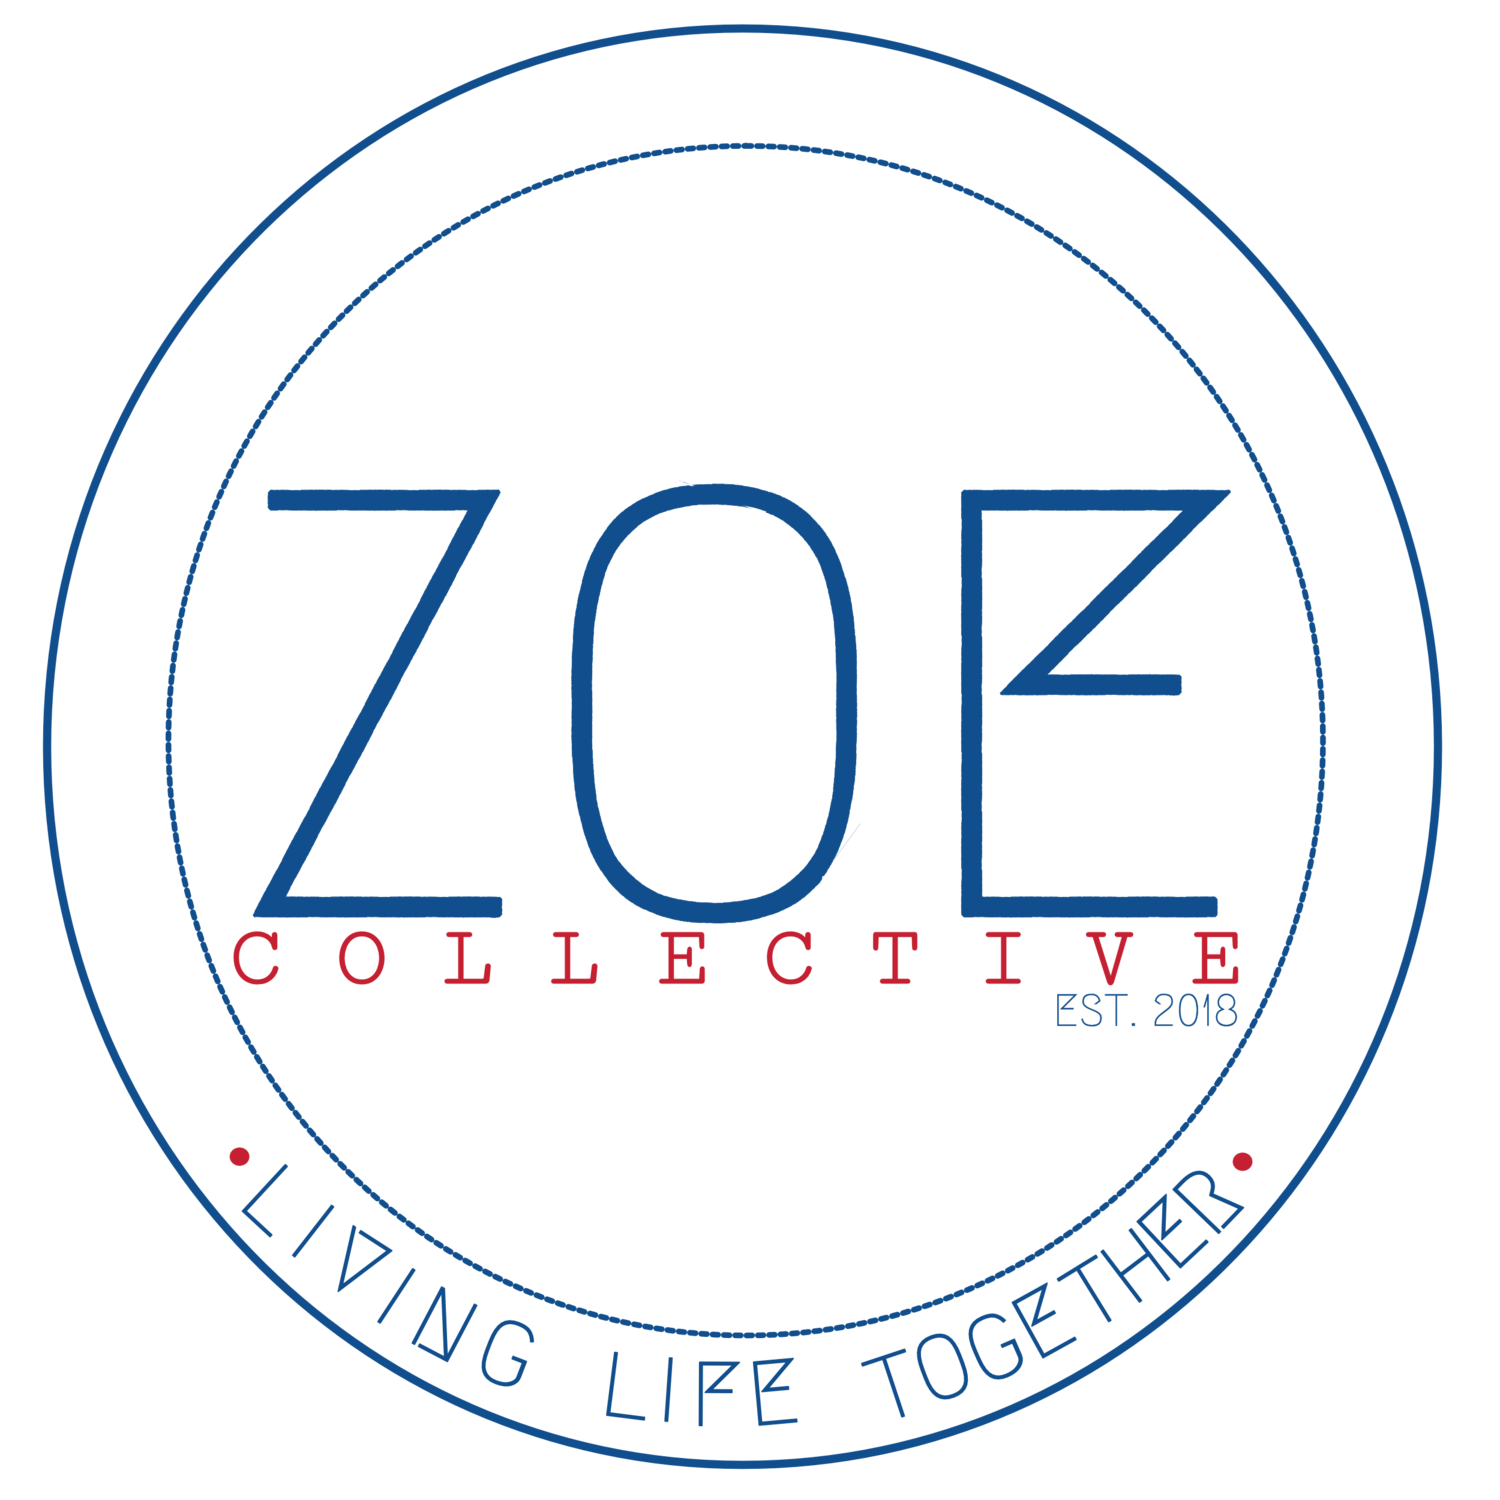 Zoe Collective